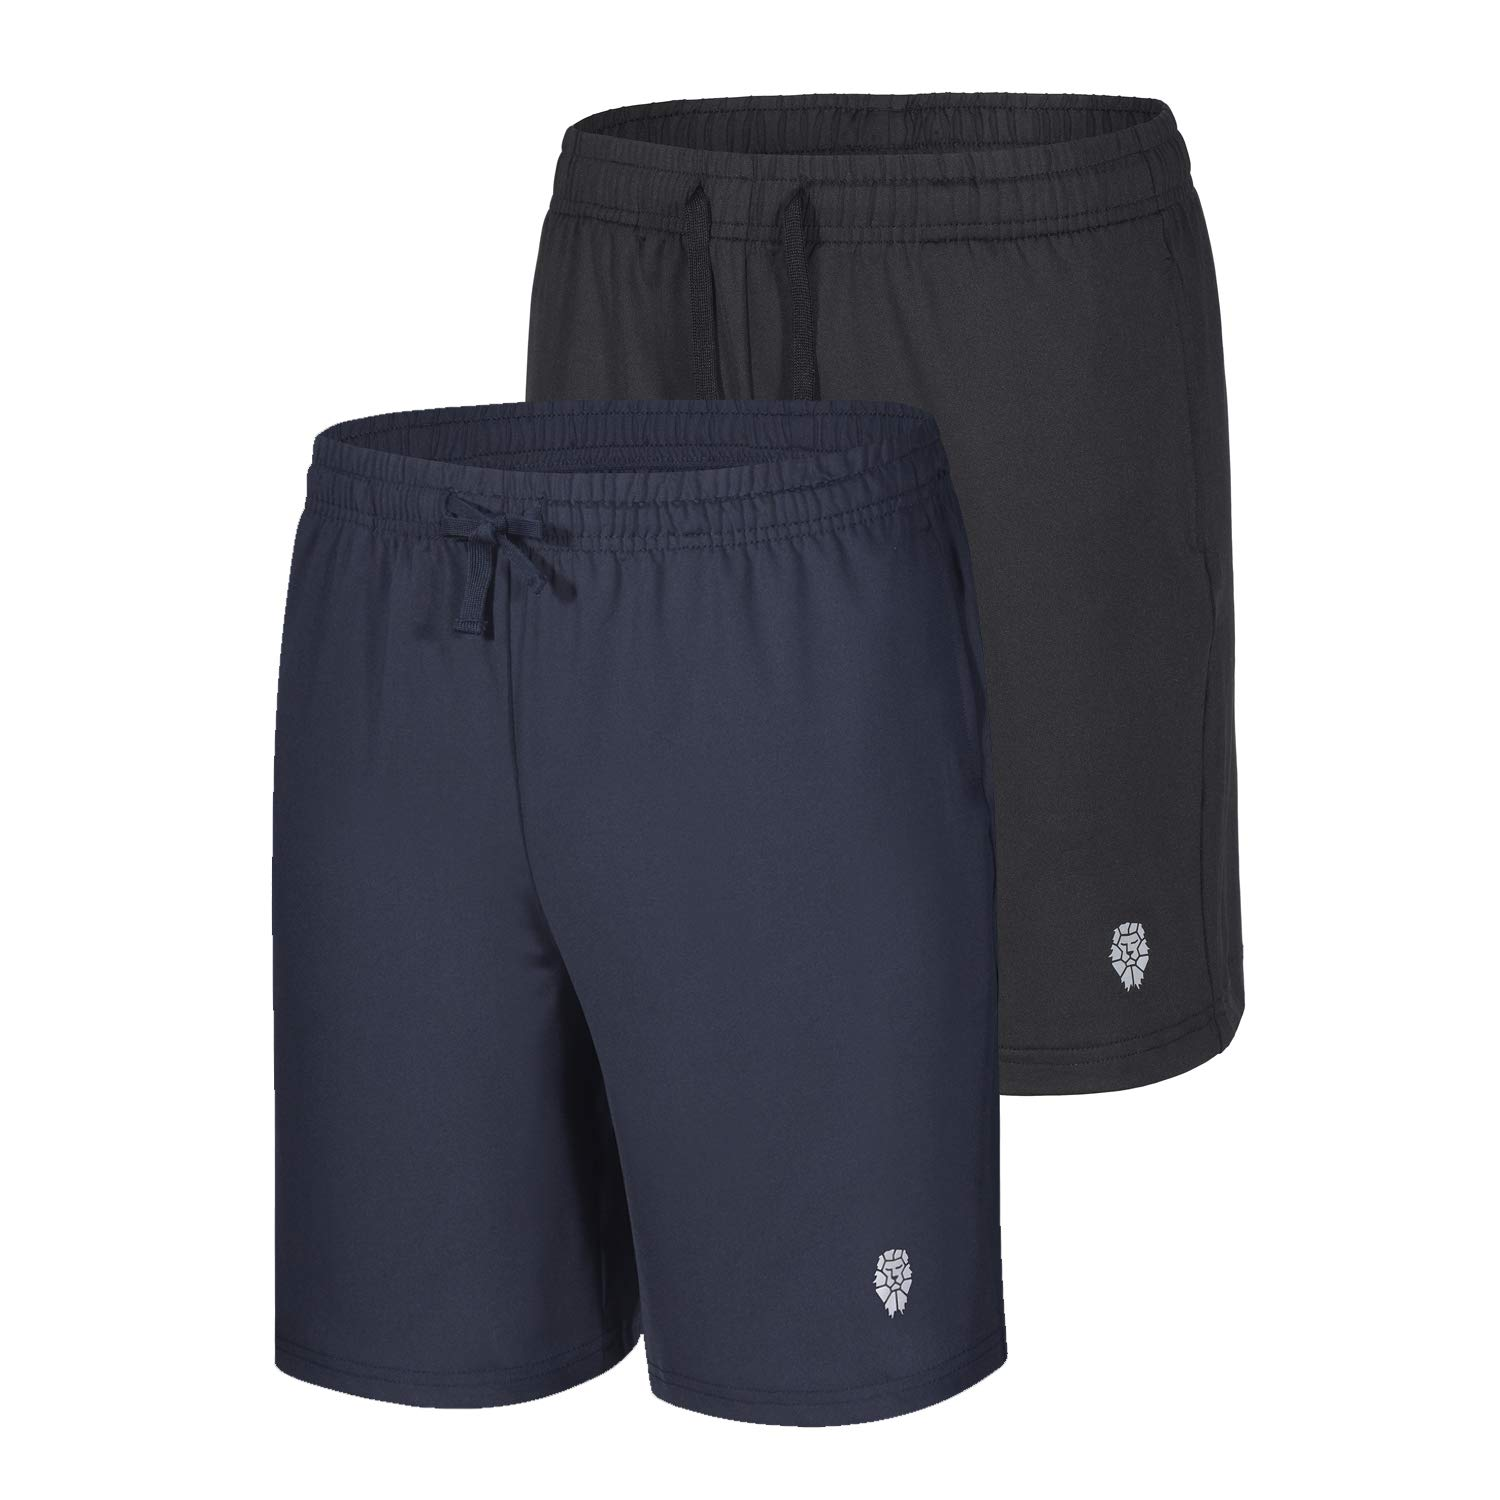 PIQIDIG Youth Boys' Loose Fit Athletic Shorts Quick Dry Active Shorts with Pocket, 2-Pack Black/Navy M by PIQIDIG